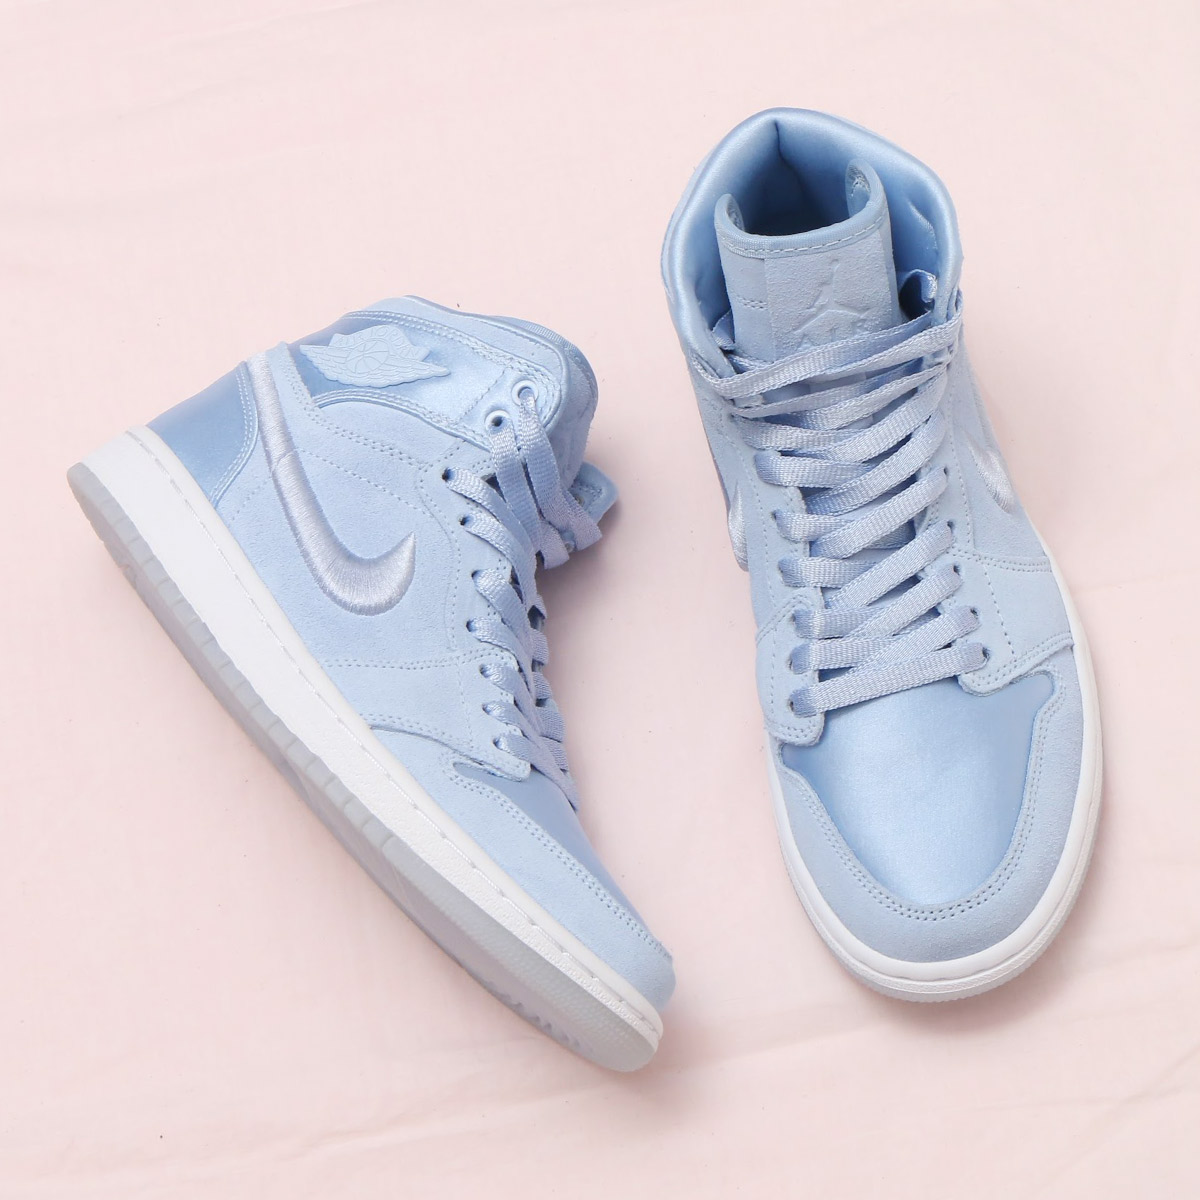 73eedb2944033d NIKE WMNS AIR JORDAN 1 RET HIGH SOH (Nike women Air Jordan 1 nostalgic high  SOH) (HYDROGEN BLUE WHITE-METALLIC GOLD) 18SP-S